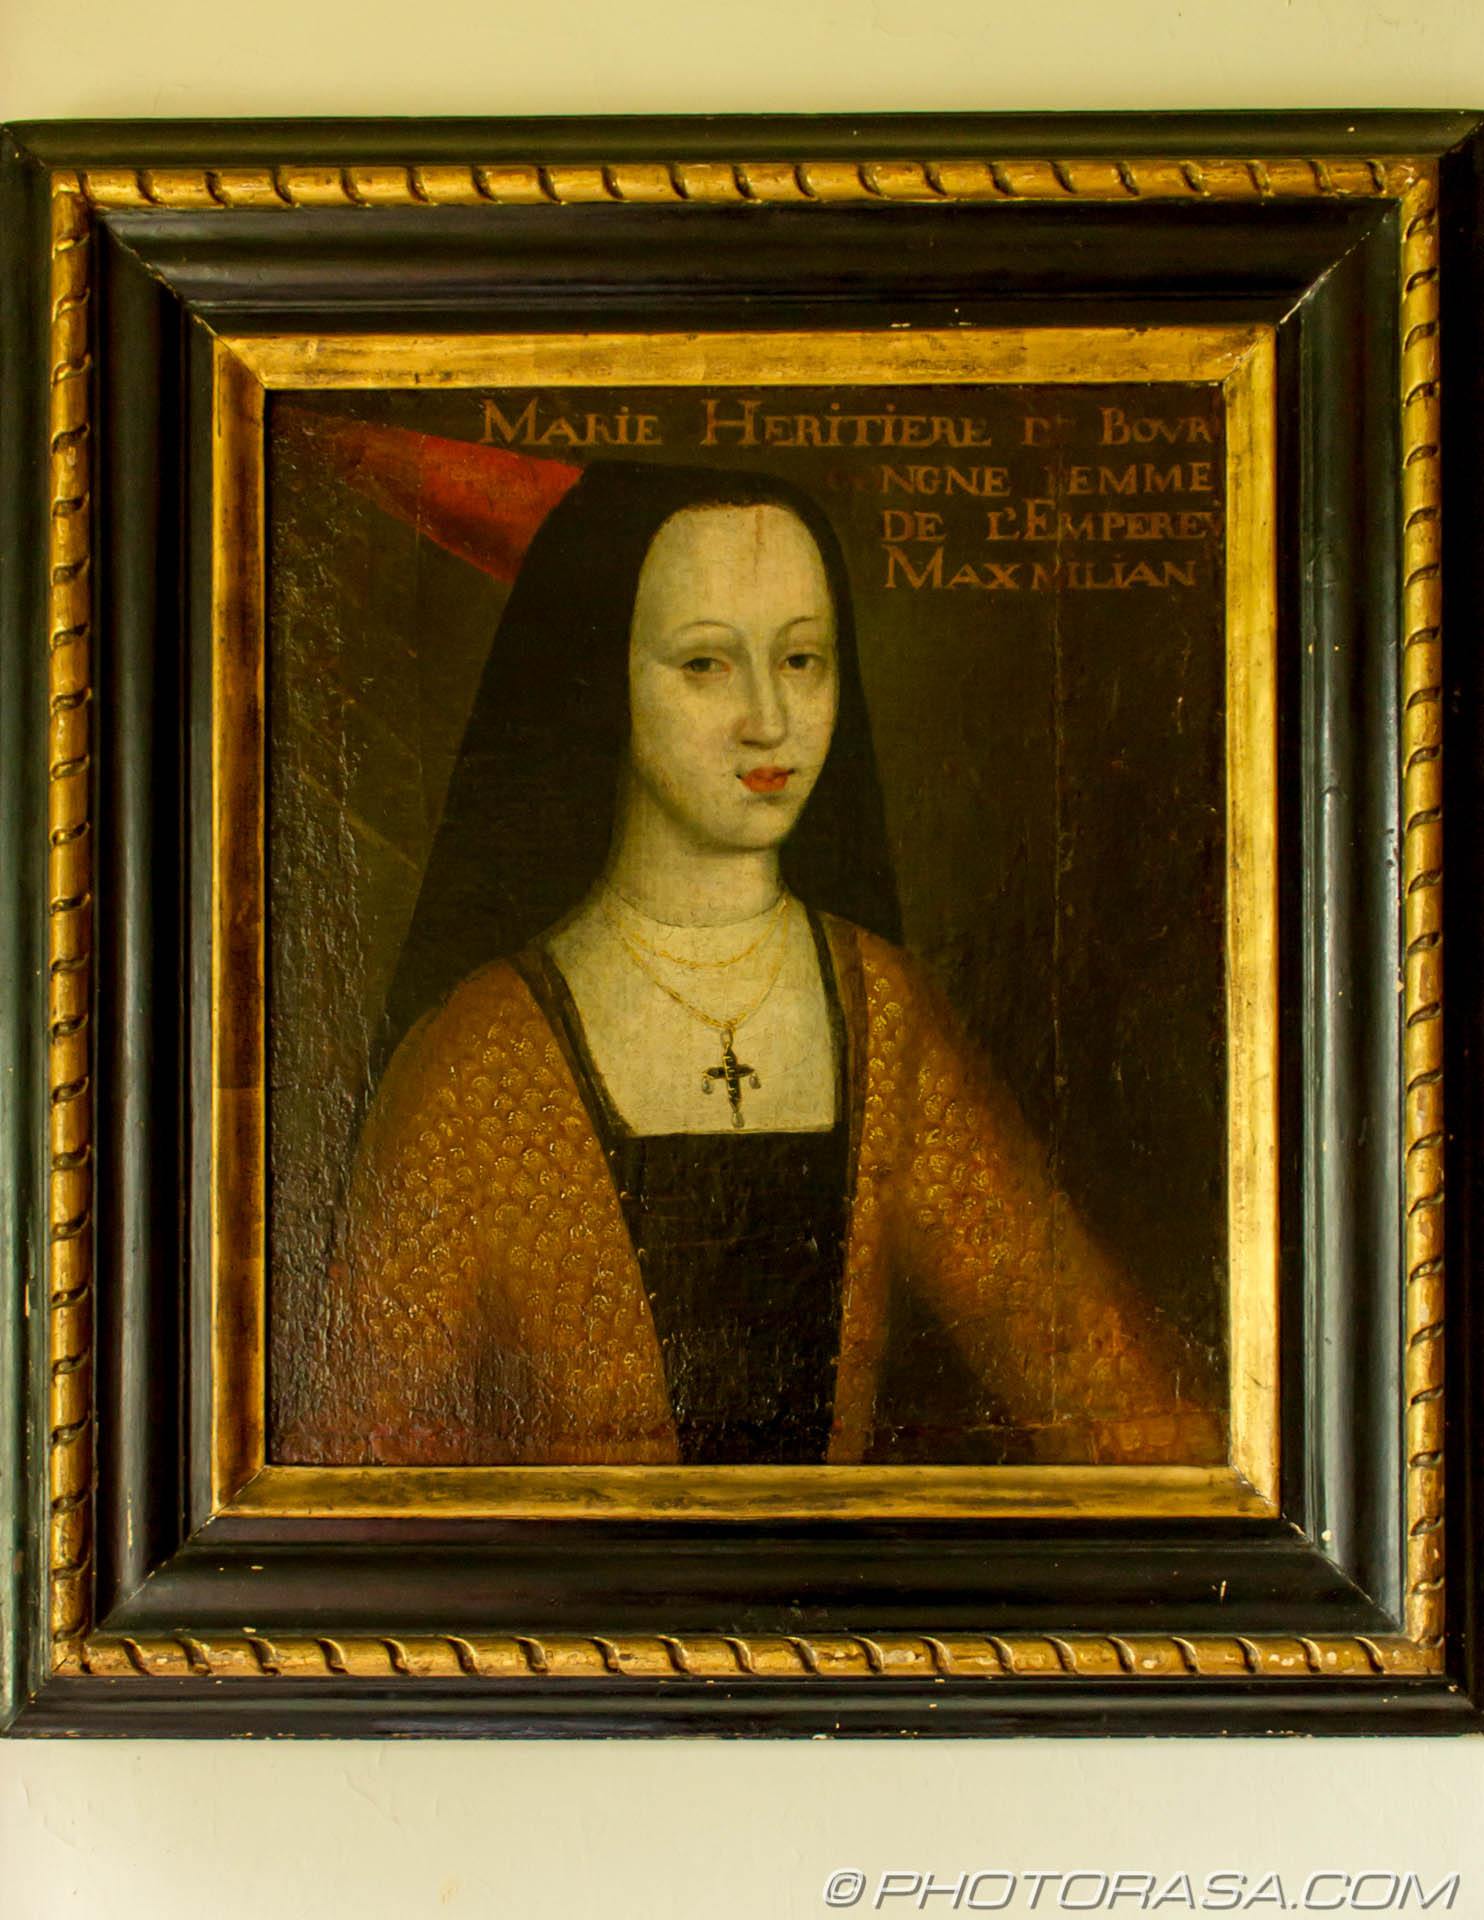 https://photorasa.com/stoneacre-house-paintings/early-tudor-painting-of-mary-duchess-of-burgundy/